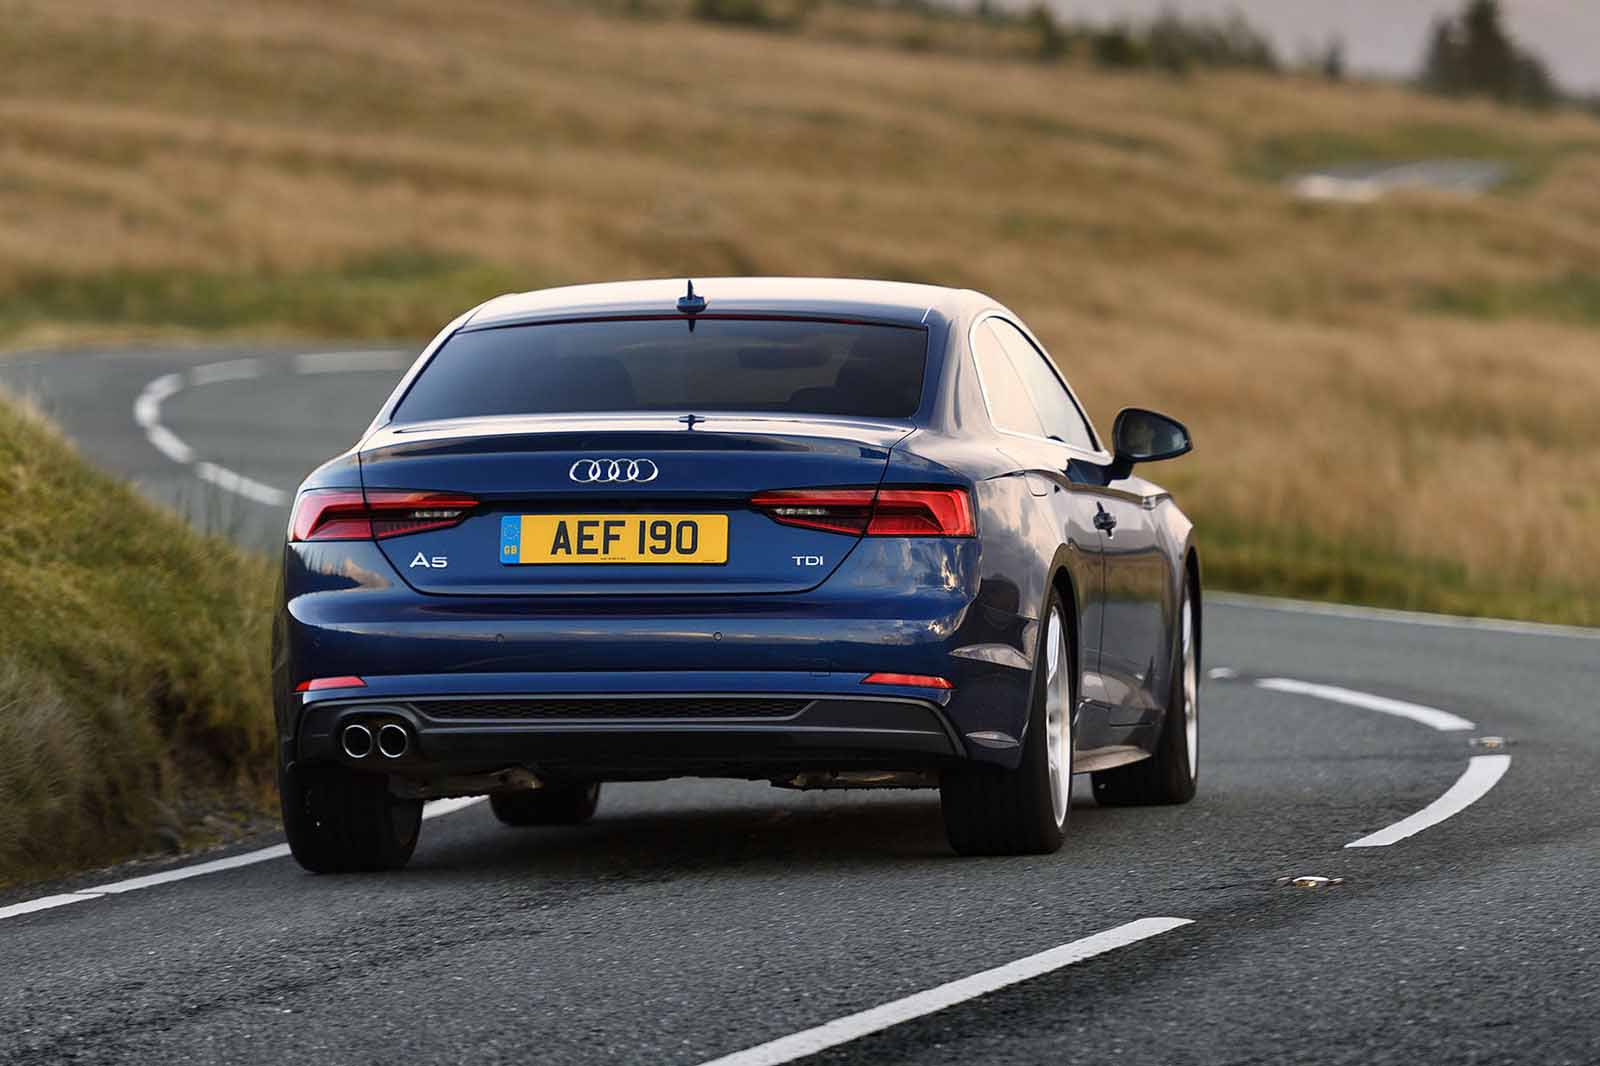 Audi A5 2019 rear right cornering shot